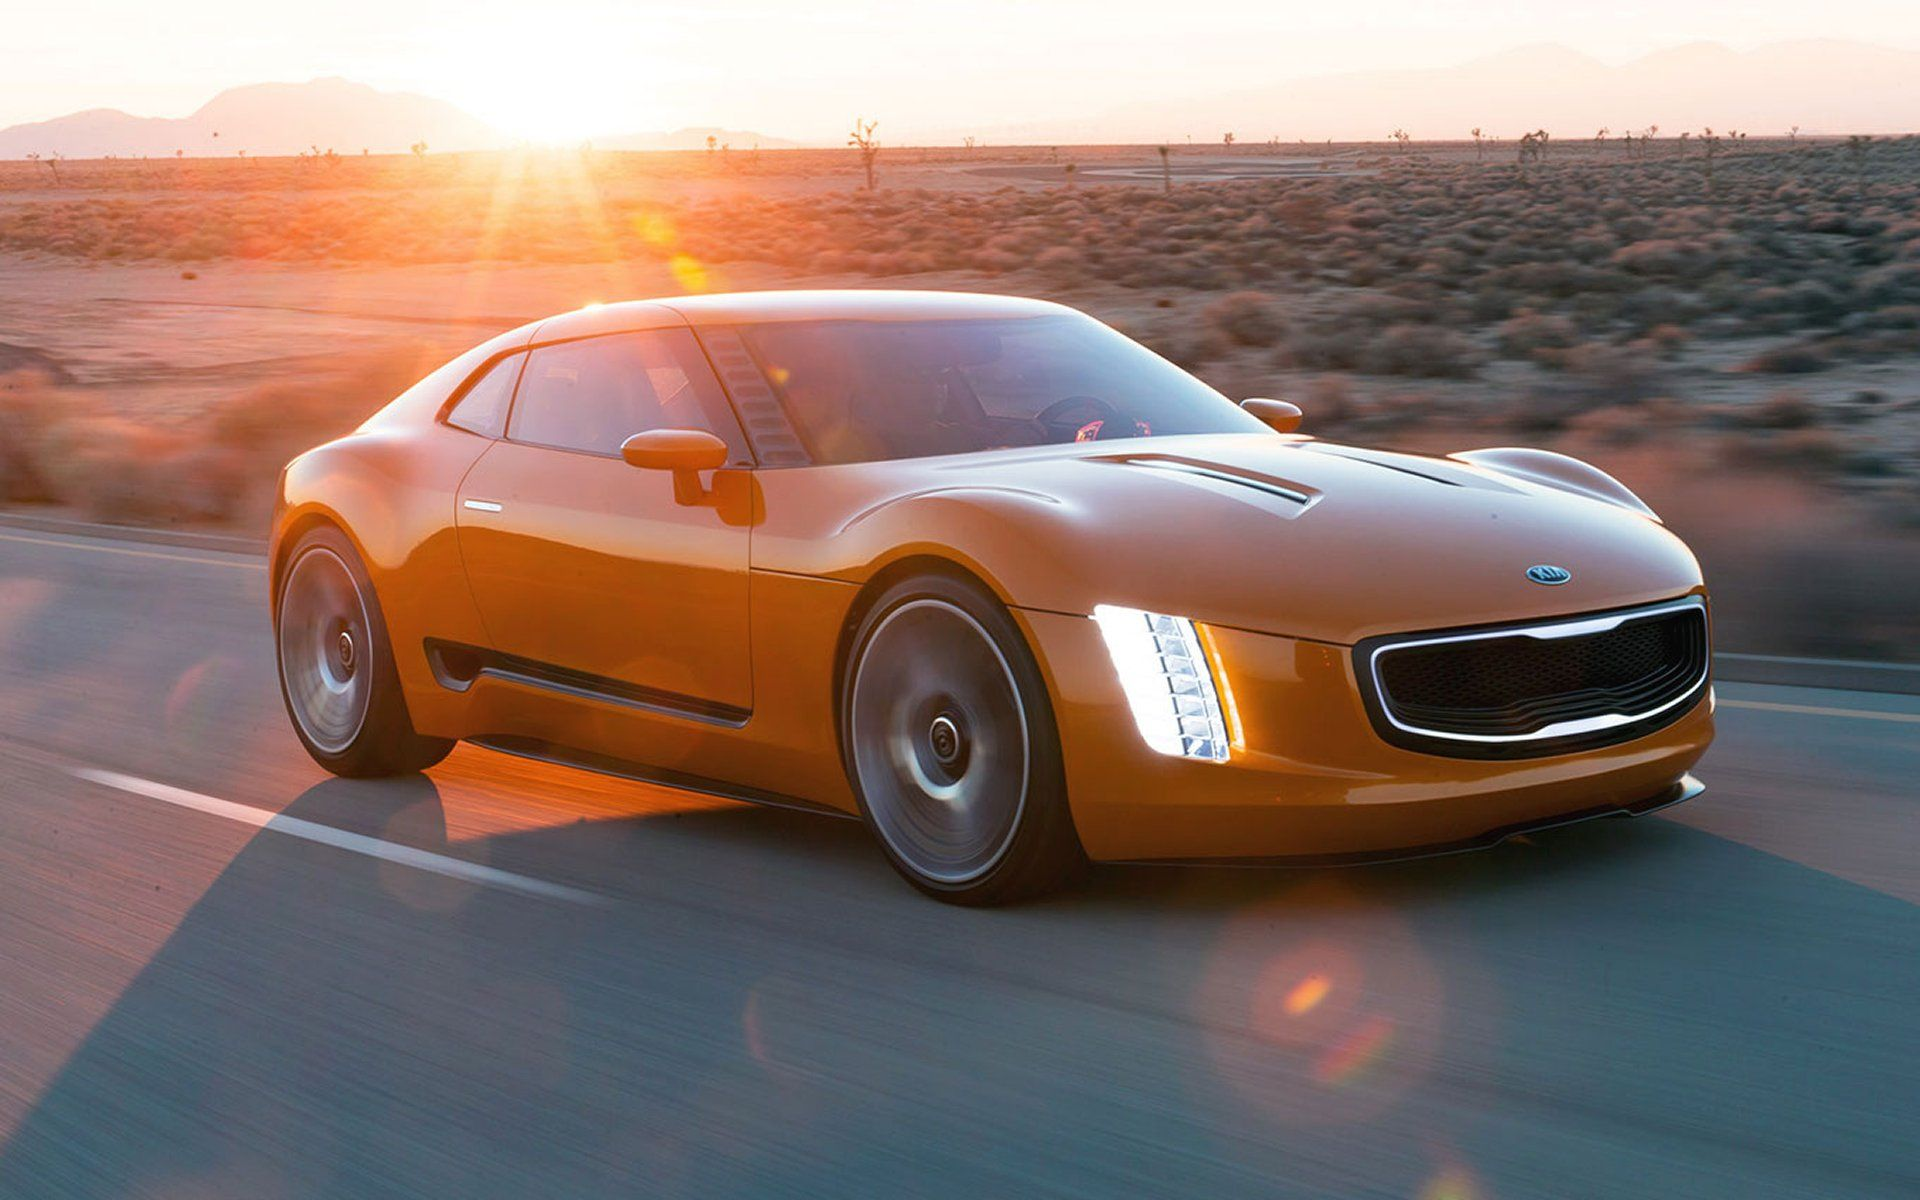 Kia Concept Cars GT4 Stinger Sports Car Concept cars